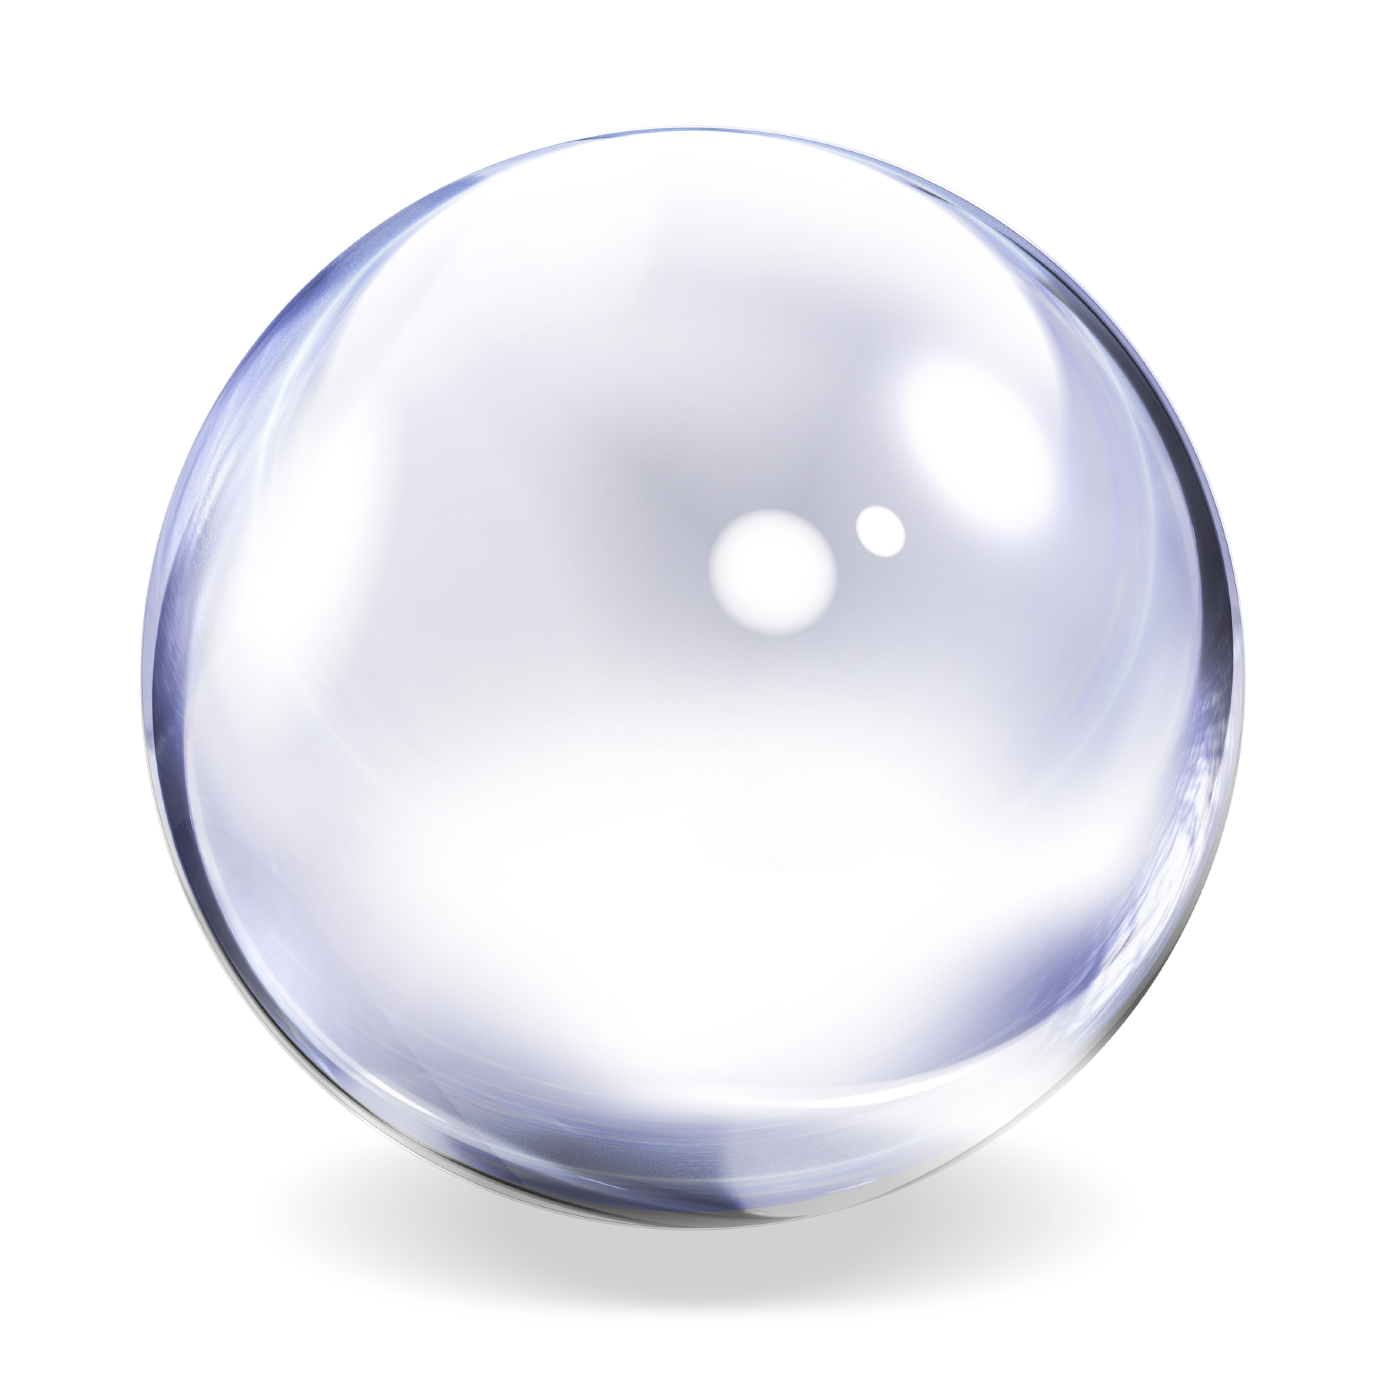 hd hyperreal bubble soap bubb